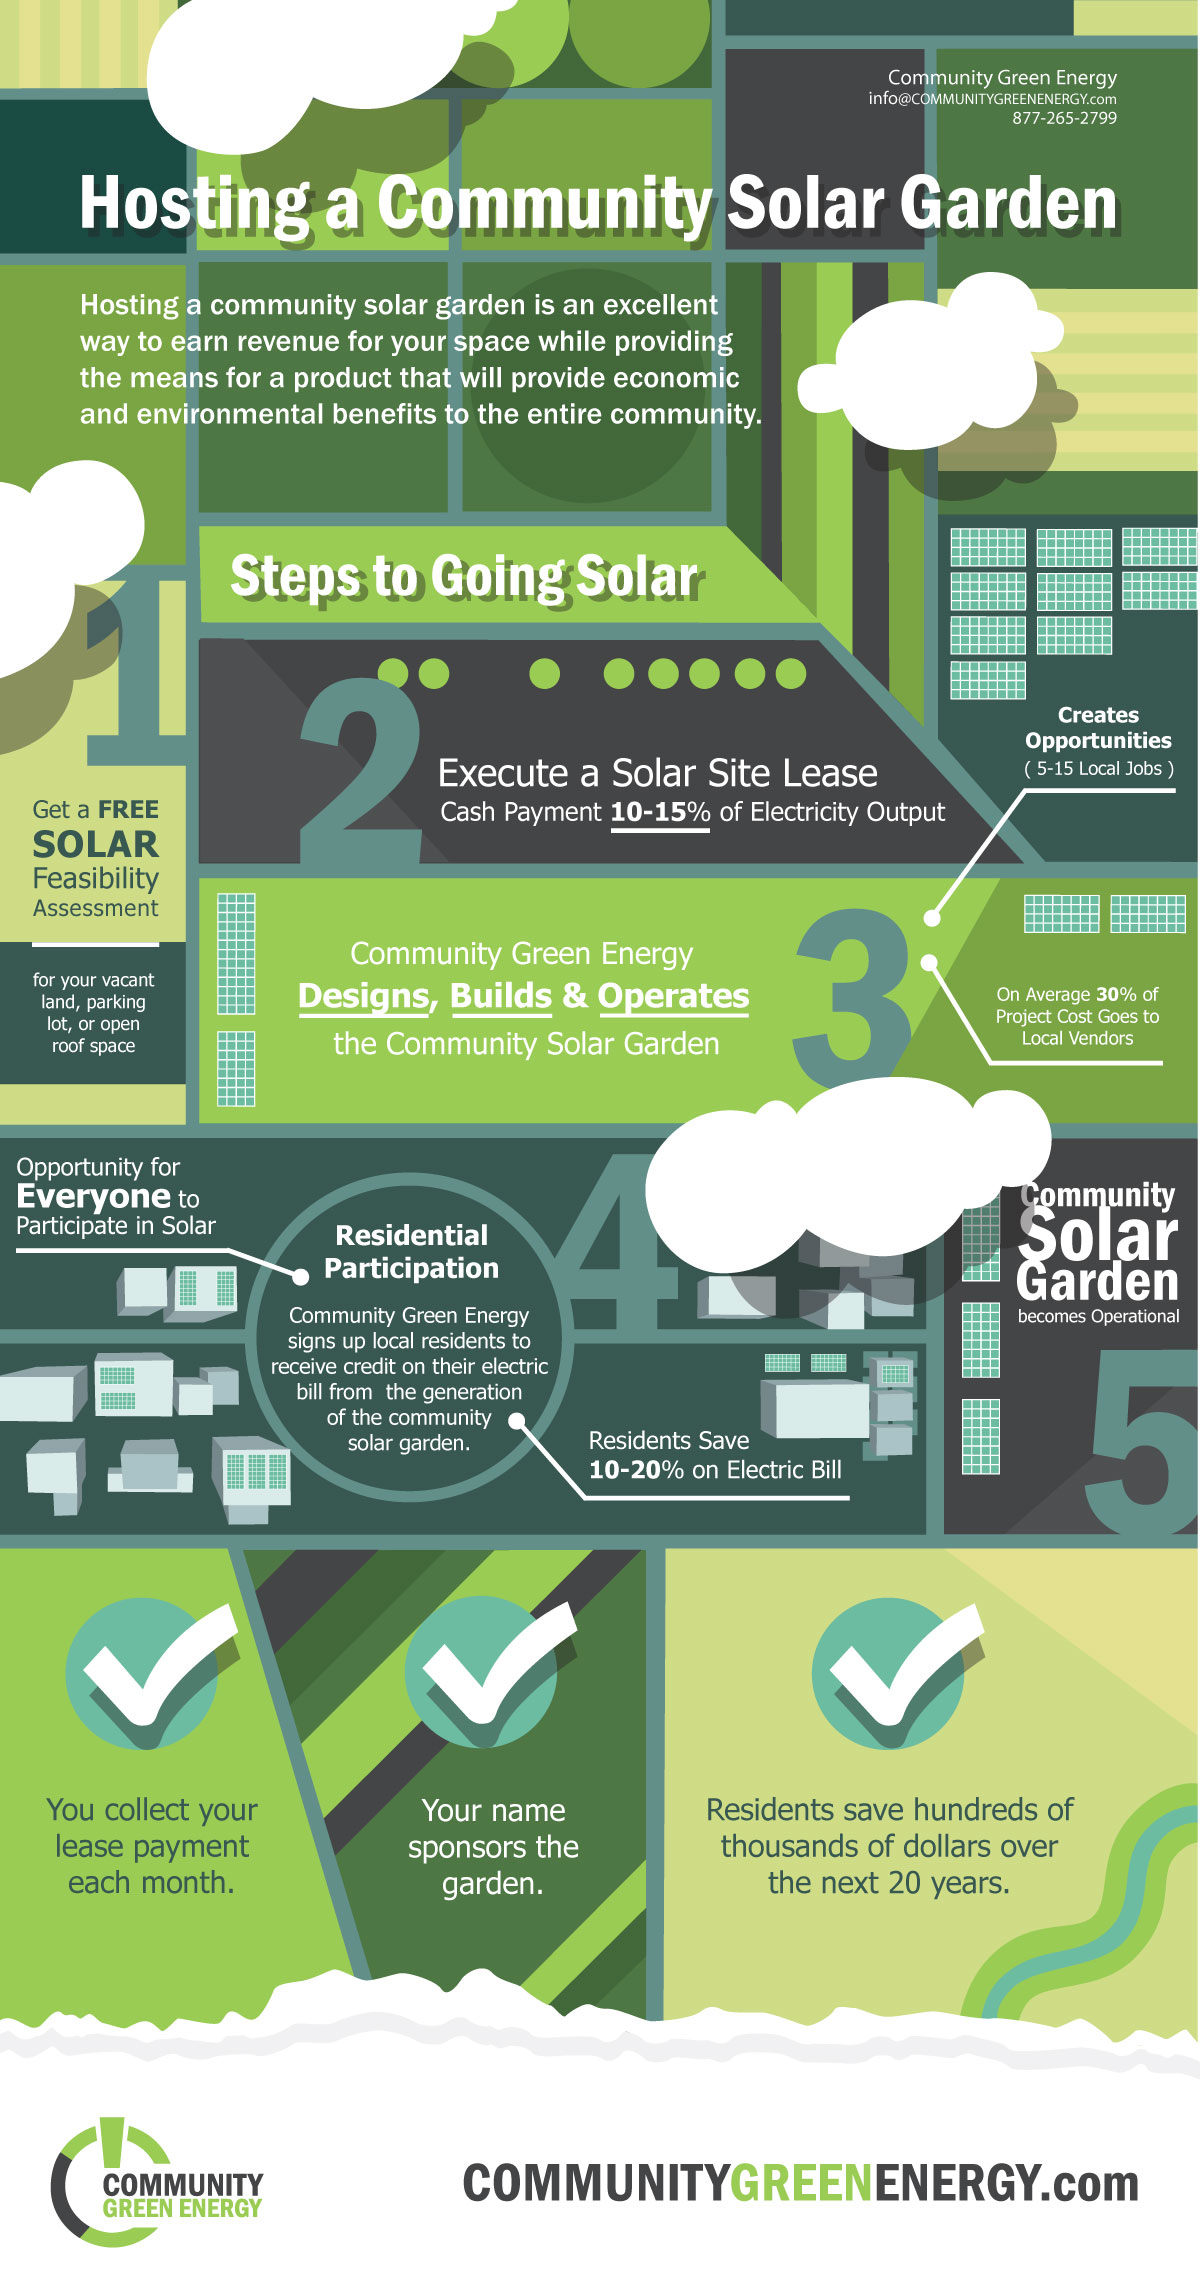 Want to Host a Community Solar Garden, Here's how...